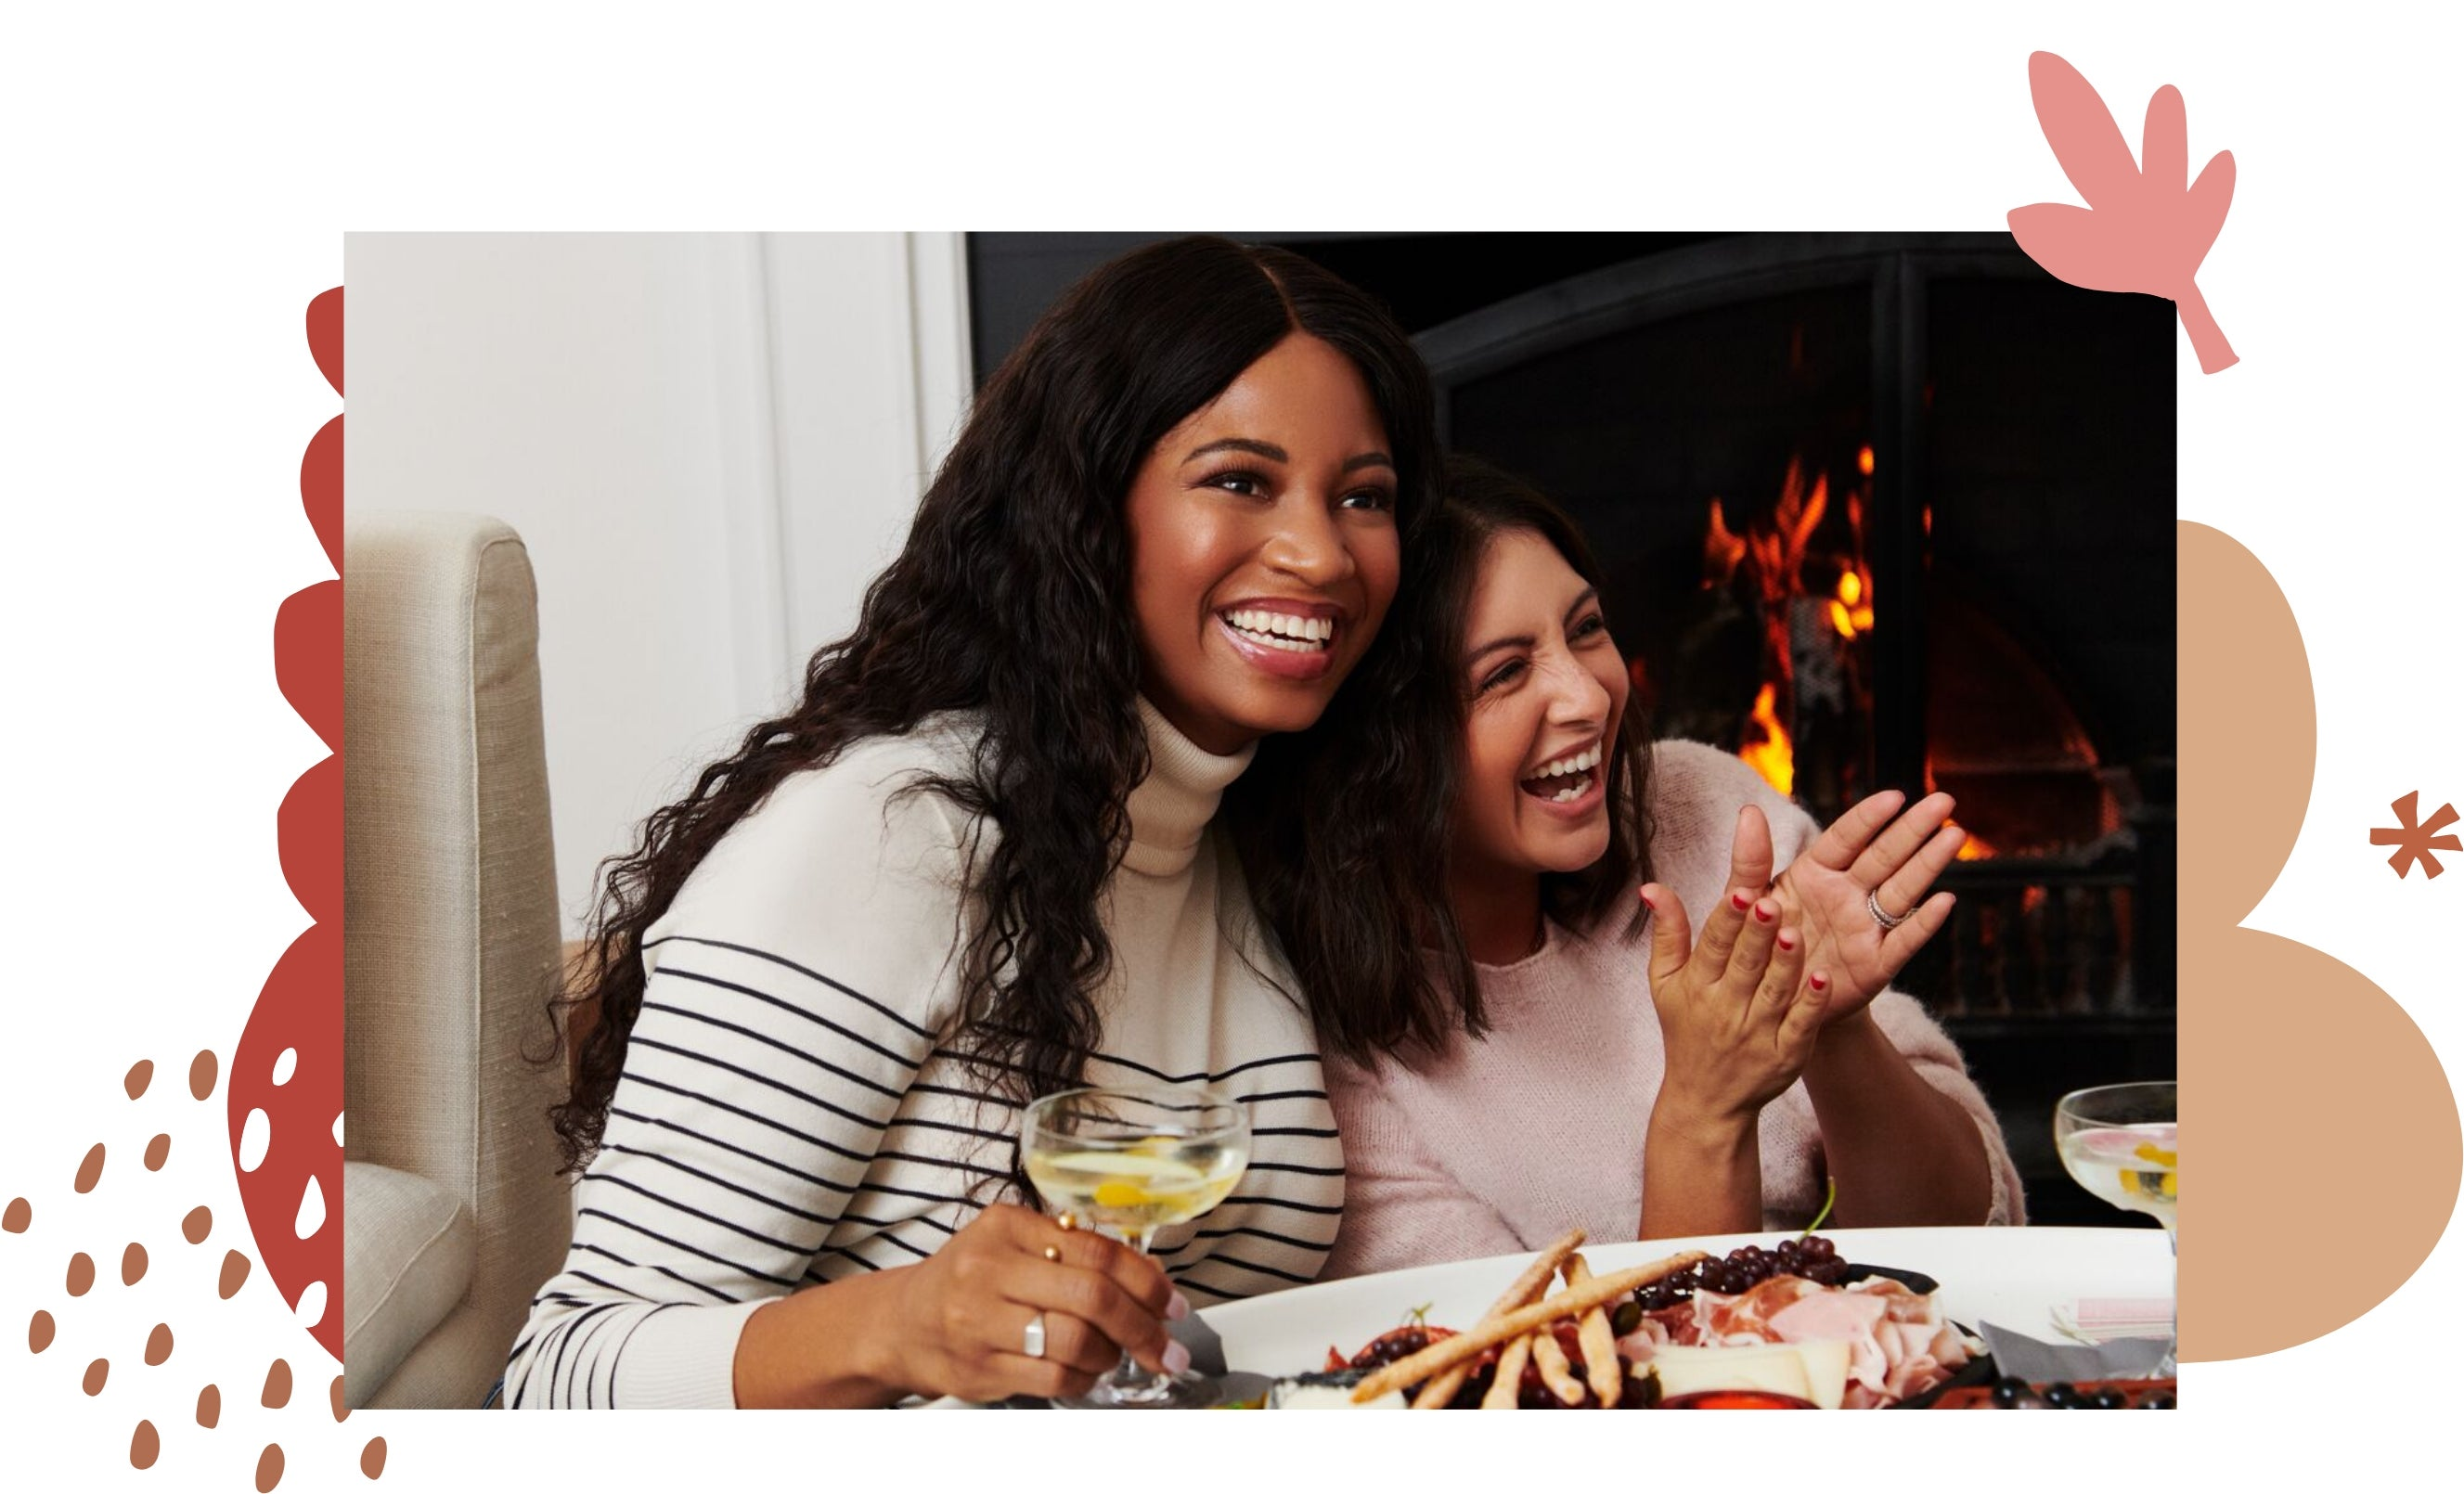 Two women, one in a white stripped shirt and another in a pink sweater, are smiling and enjoying a meal and drinks.